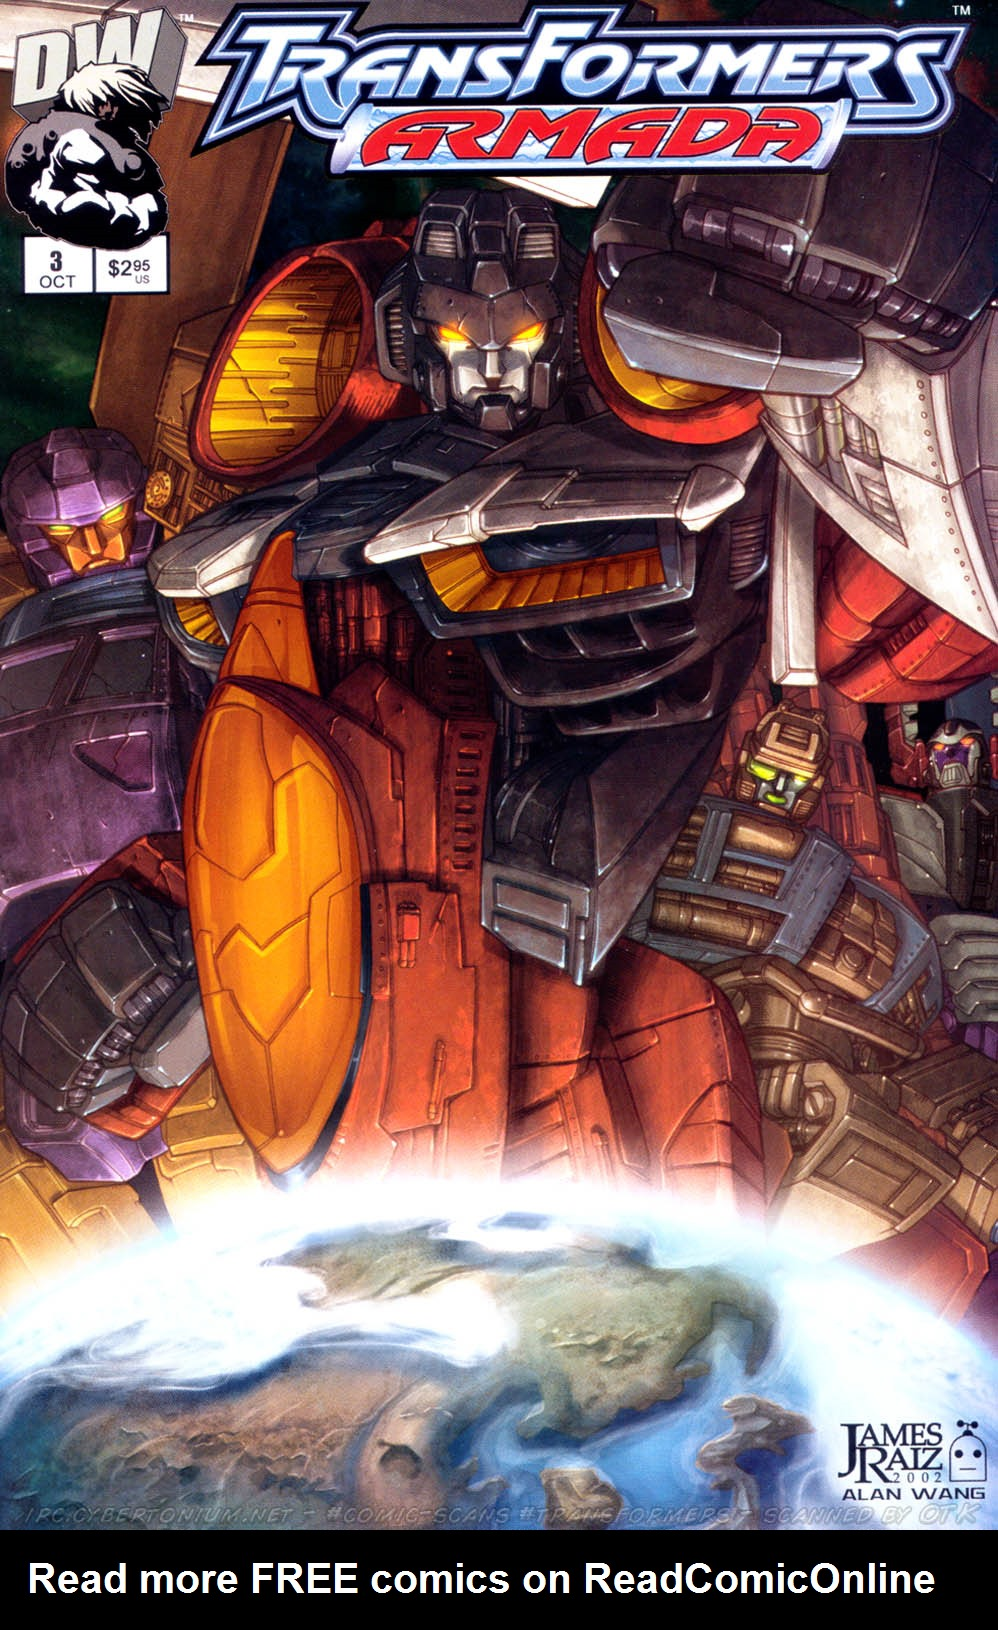 Read online Transformers Armada comic -  Issue #3 - 1